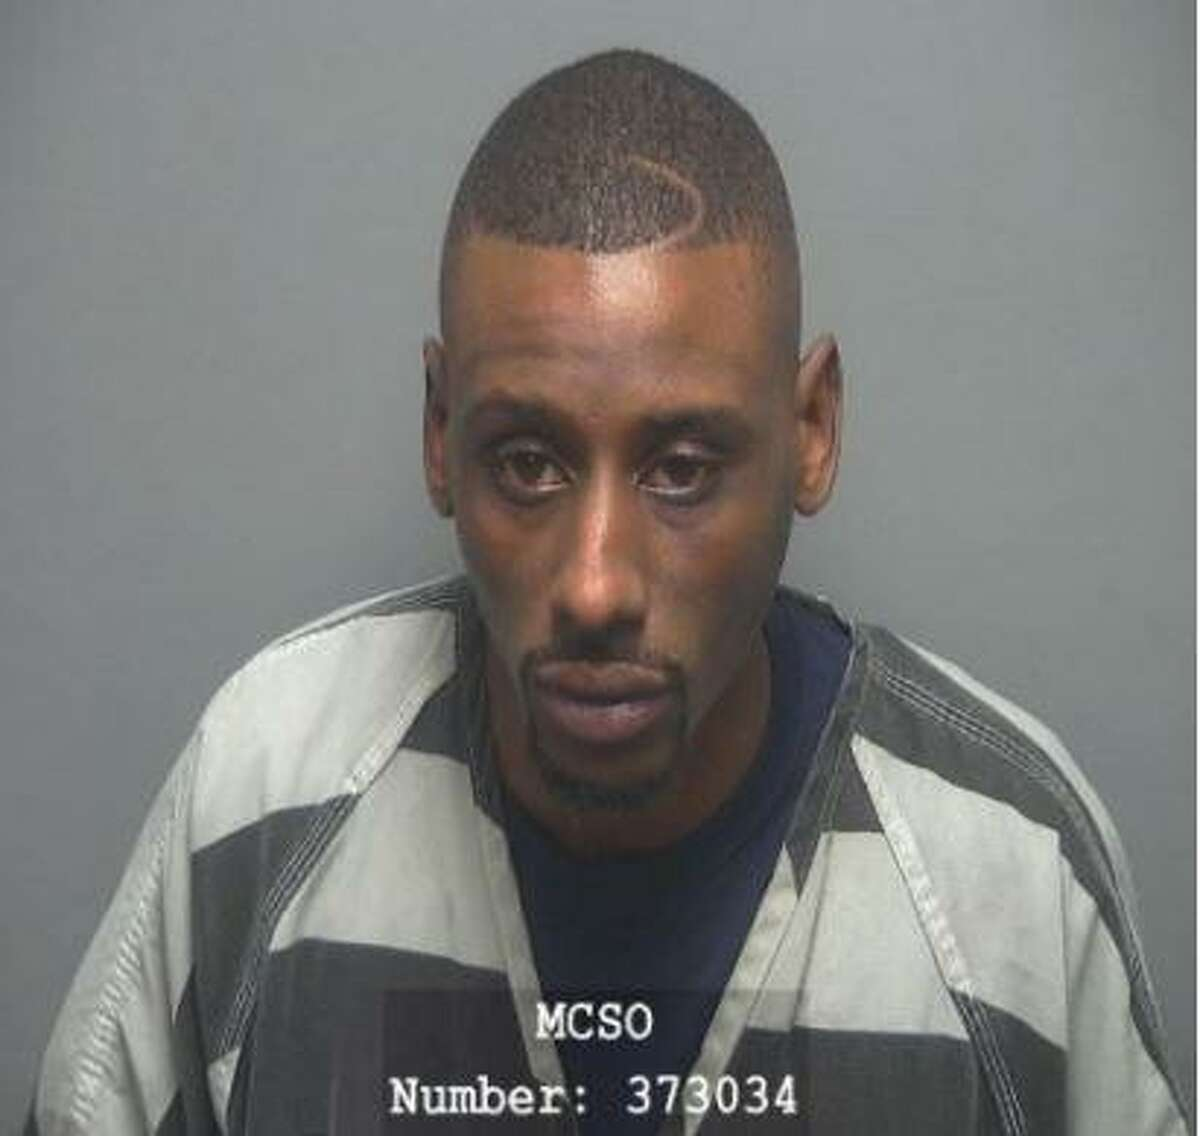 Brandon Lee Davis, 33, of Houston, is charged with promotion of prostitution, a third-degree felony.